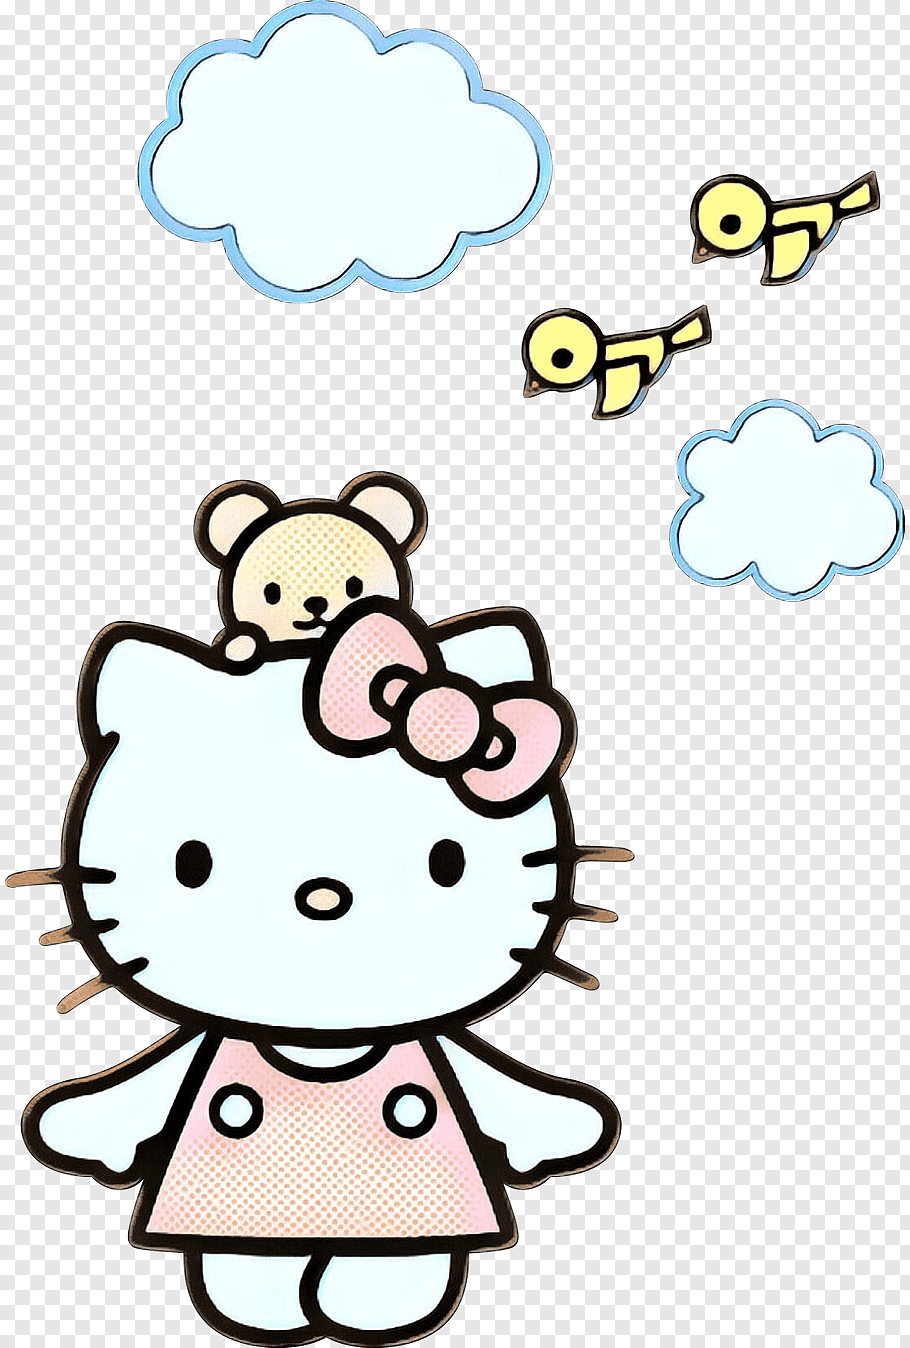 Hello Kitty Head My Melody Sanrio Hel 2579421 Png Images Pngio